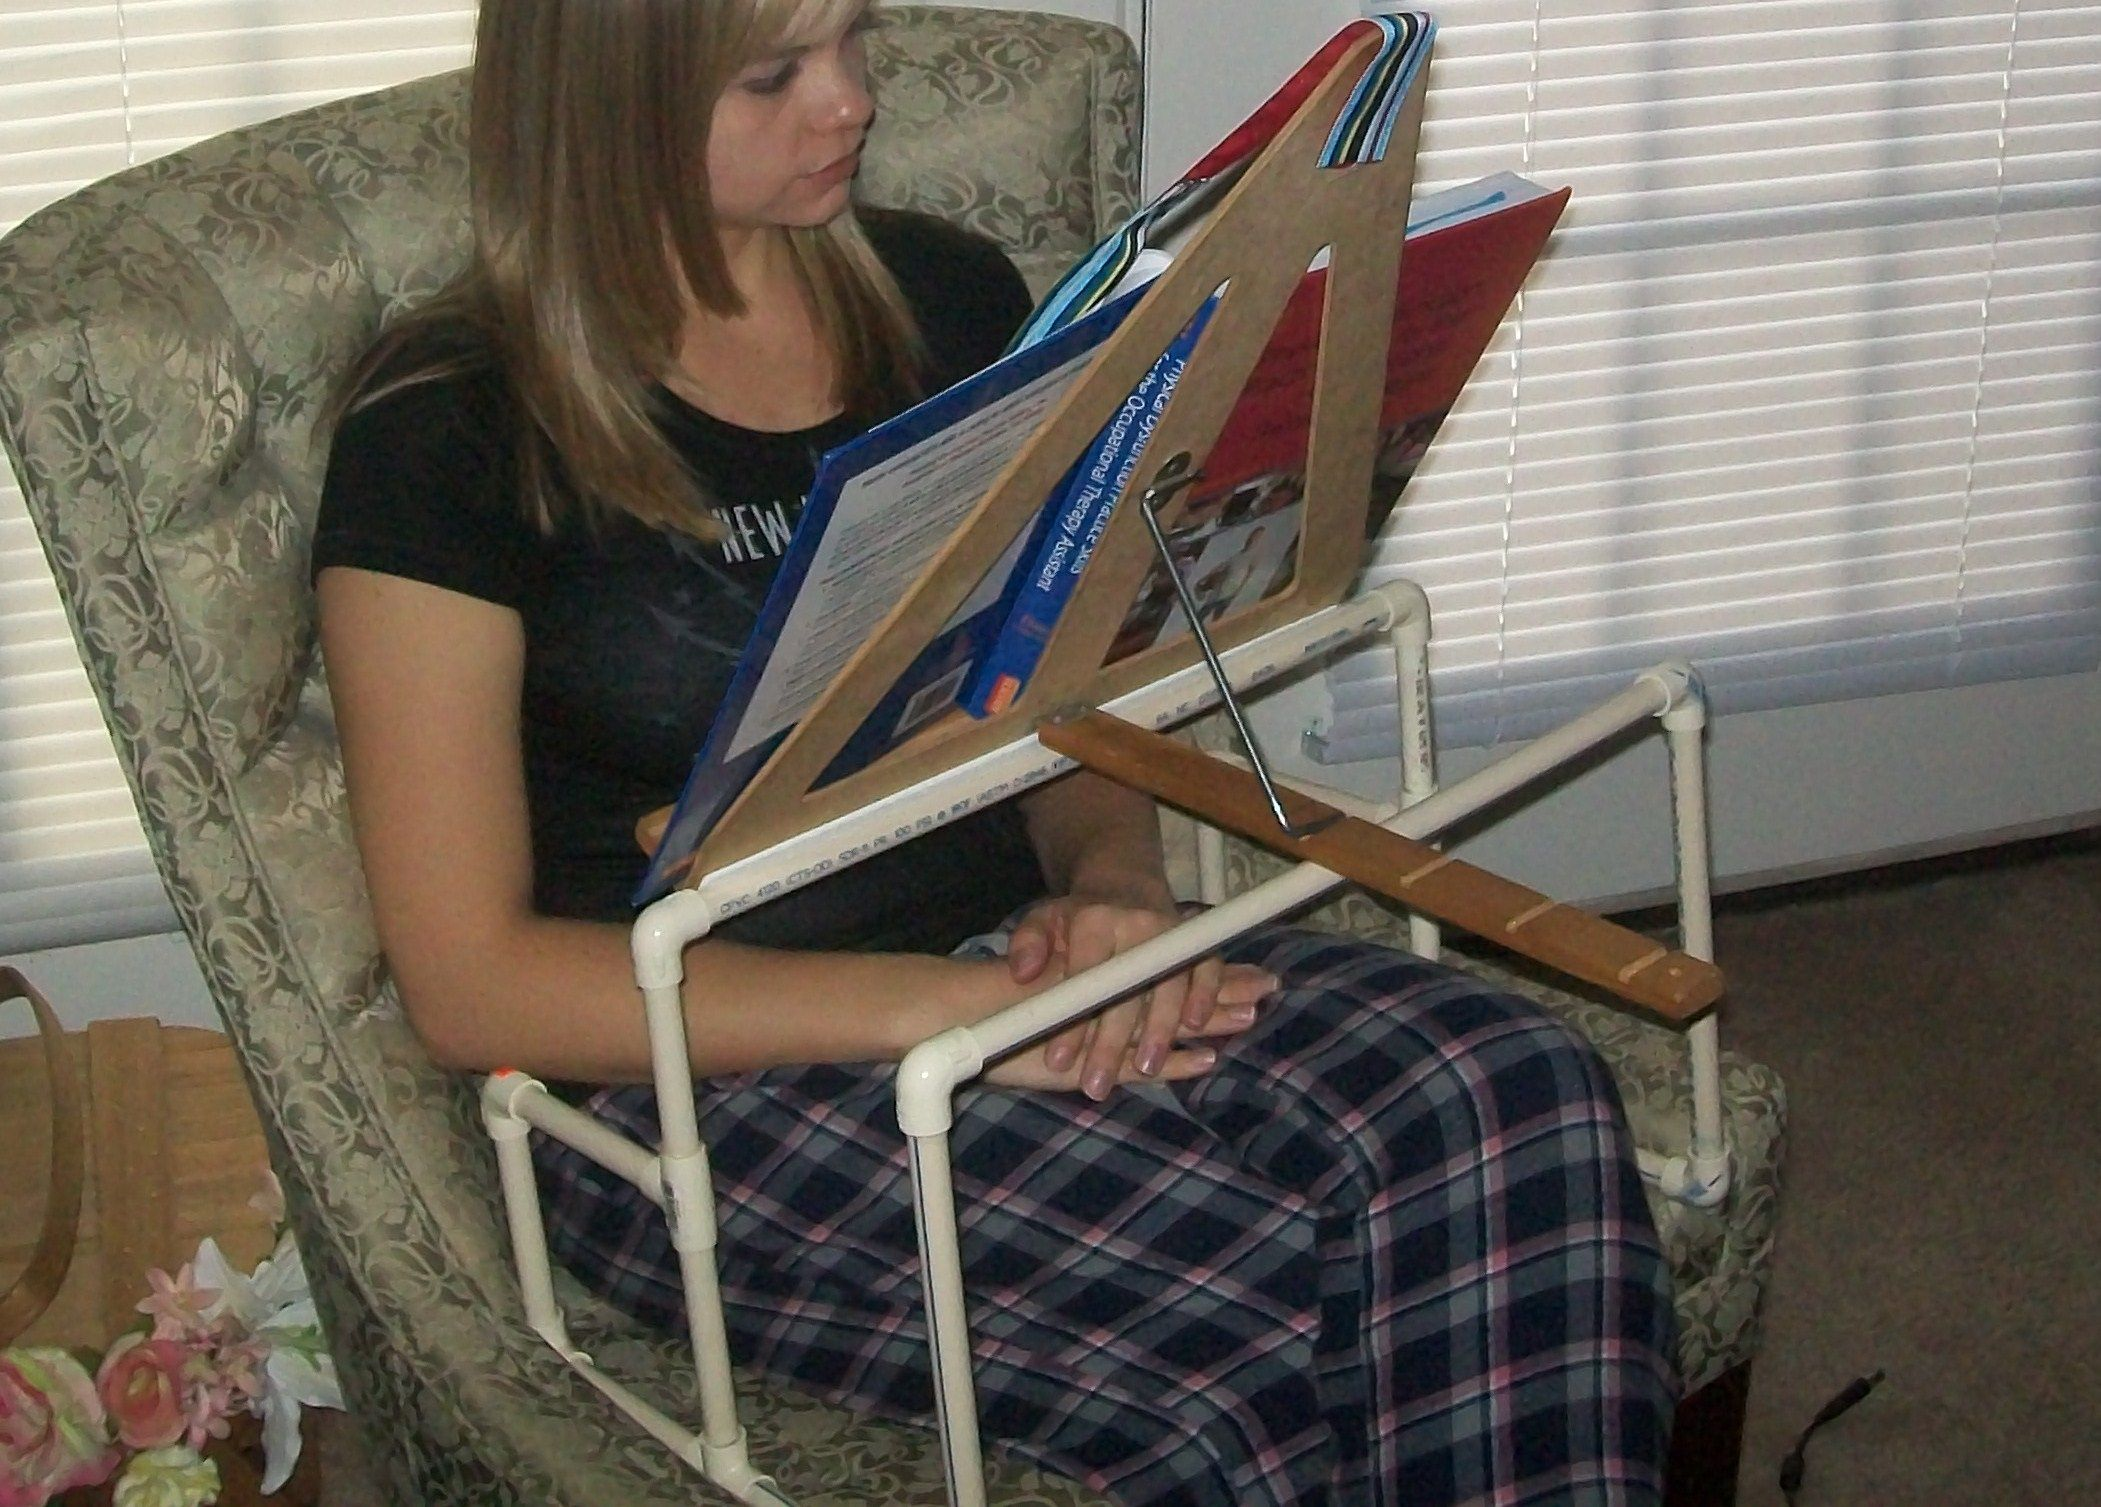 adaptive book holder for people with weak upper extremities or